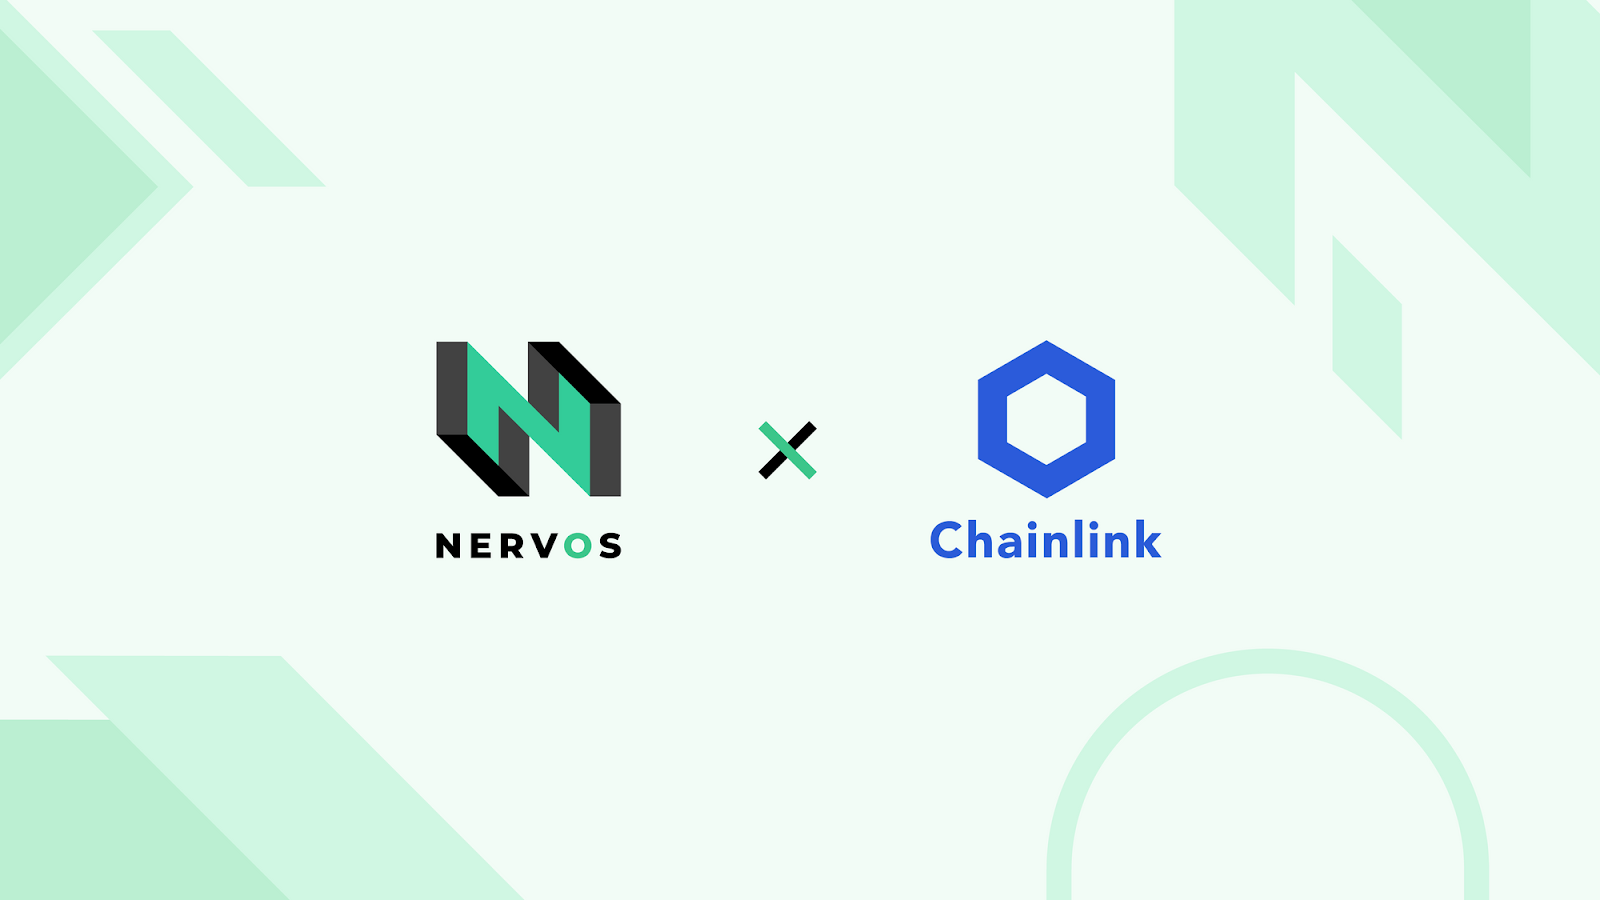 Logos for Nervos and Chainlink